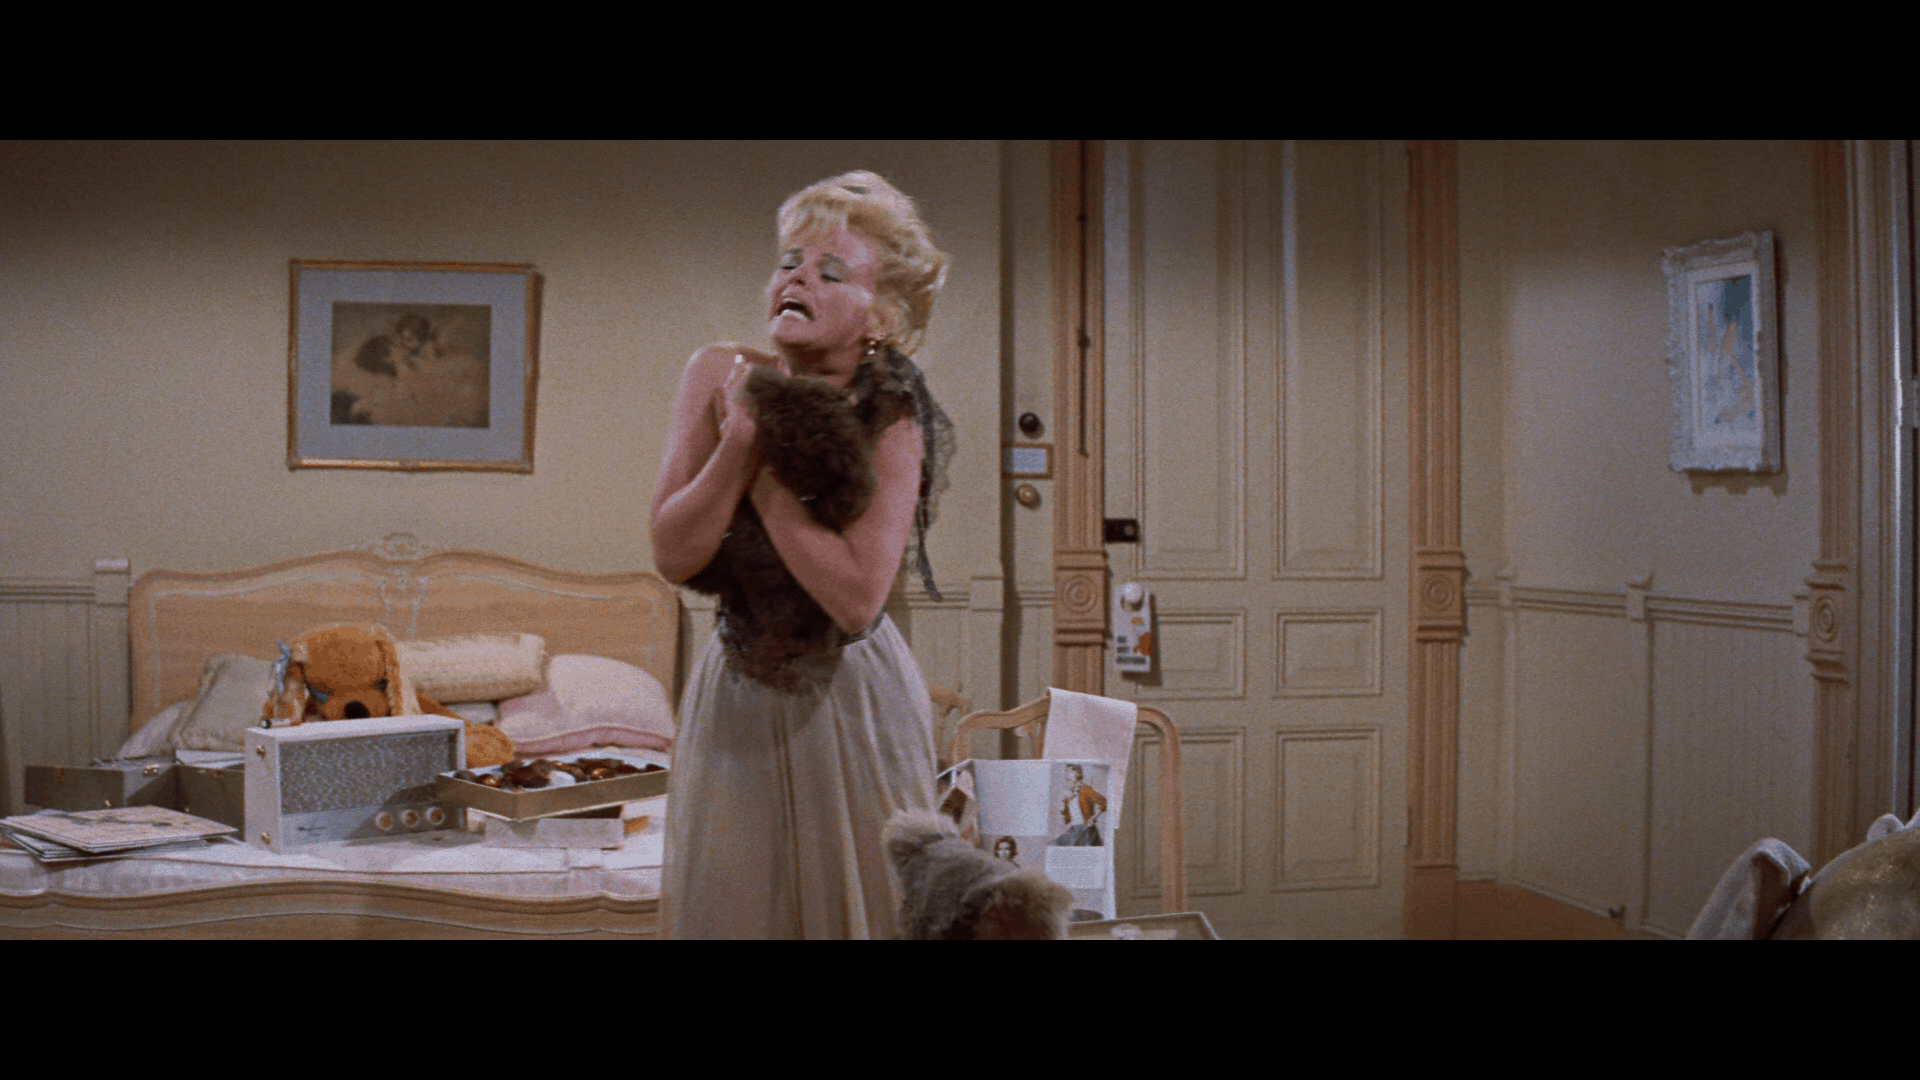 Sweet Bird of Youth is Peak Tennessee Williams [Warner Archive Blu-ray review] 21